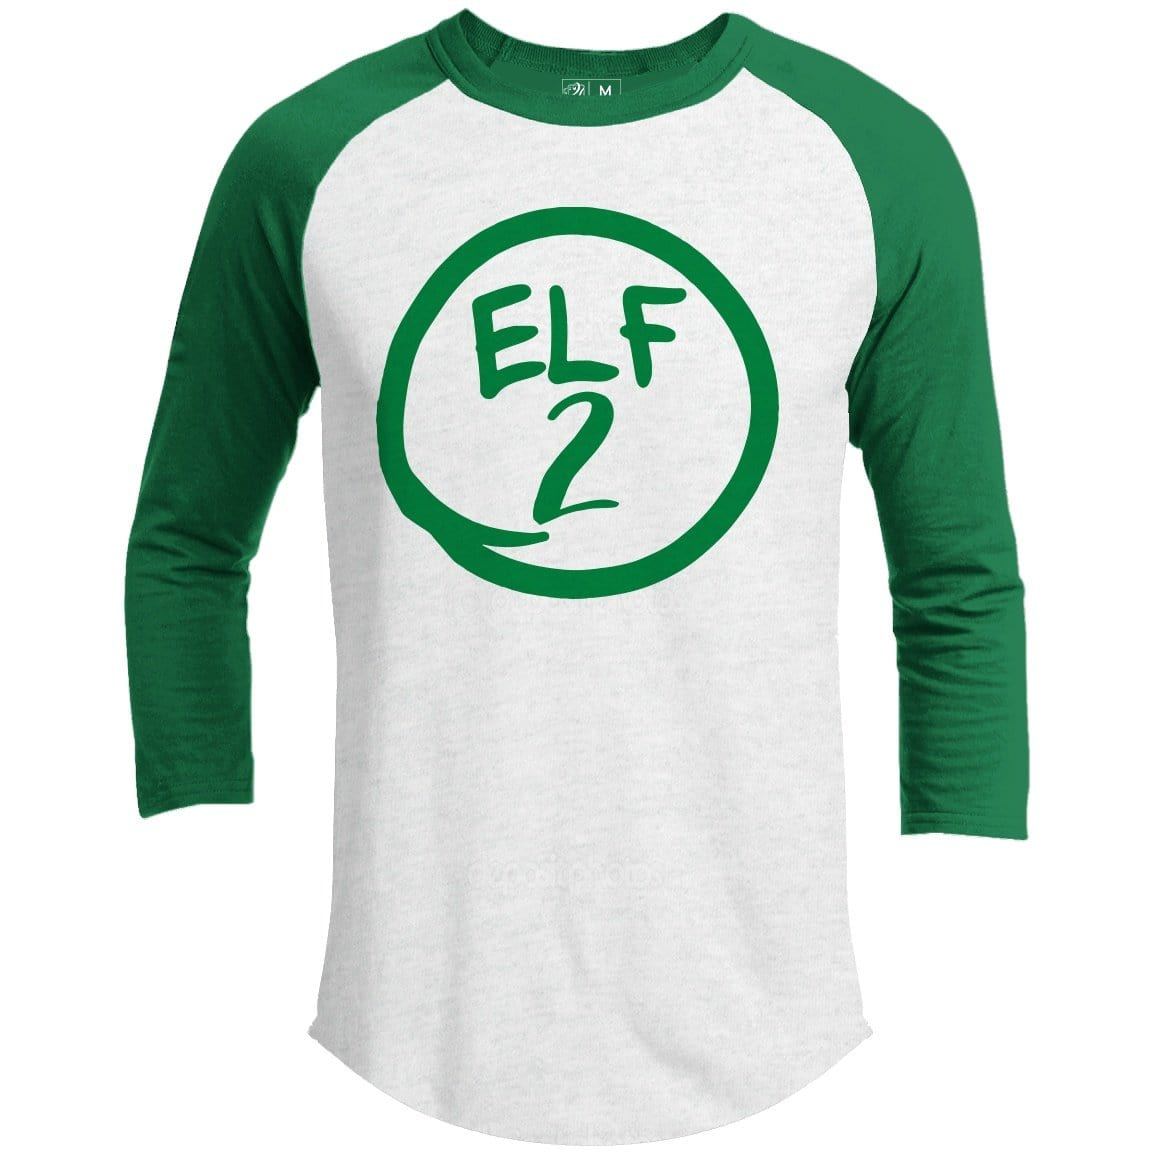 Elf 2 Premium Group Christmas Raglan